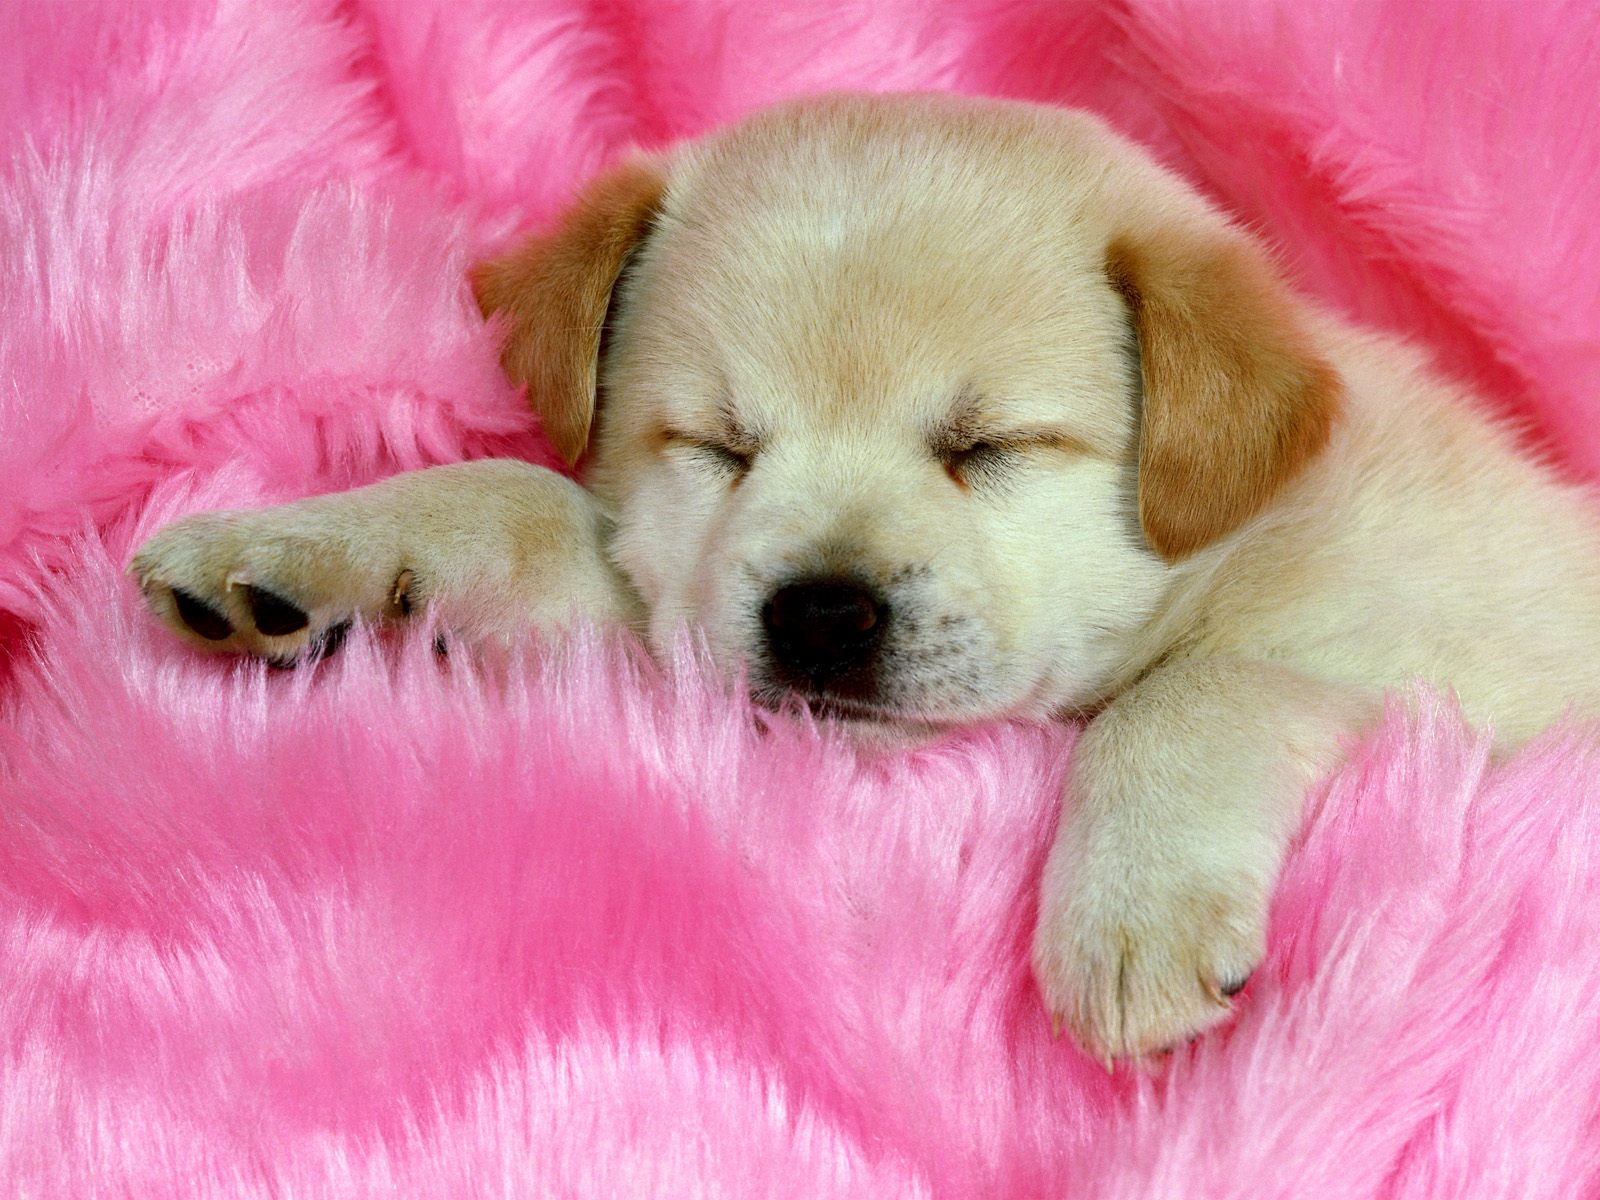 http://3.bp.blogspot.com/-uAQIVNec2WA/T2A3ddldihI/AAAAAAAACww/0-pMQsQaJzc/s1600/cute-puppies-wallpapers-03.jpg